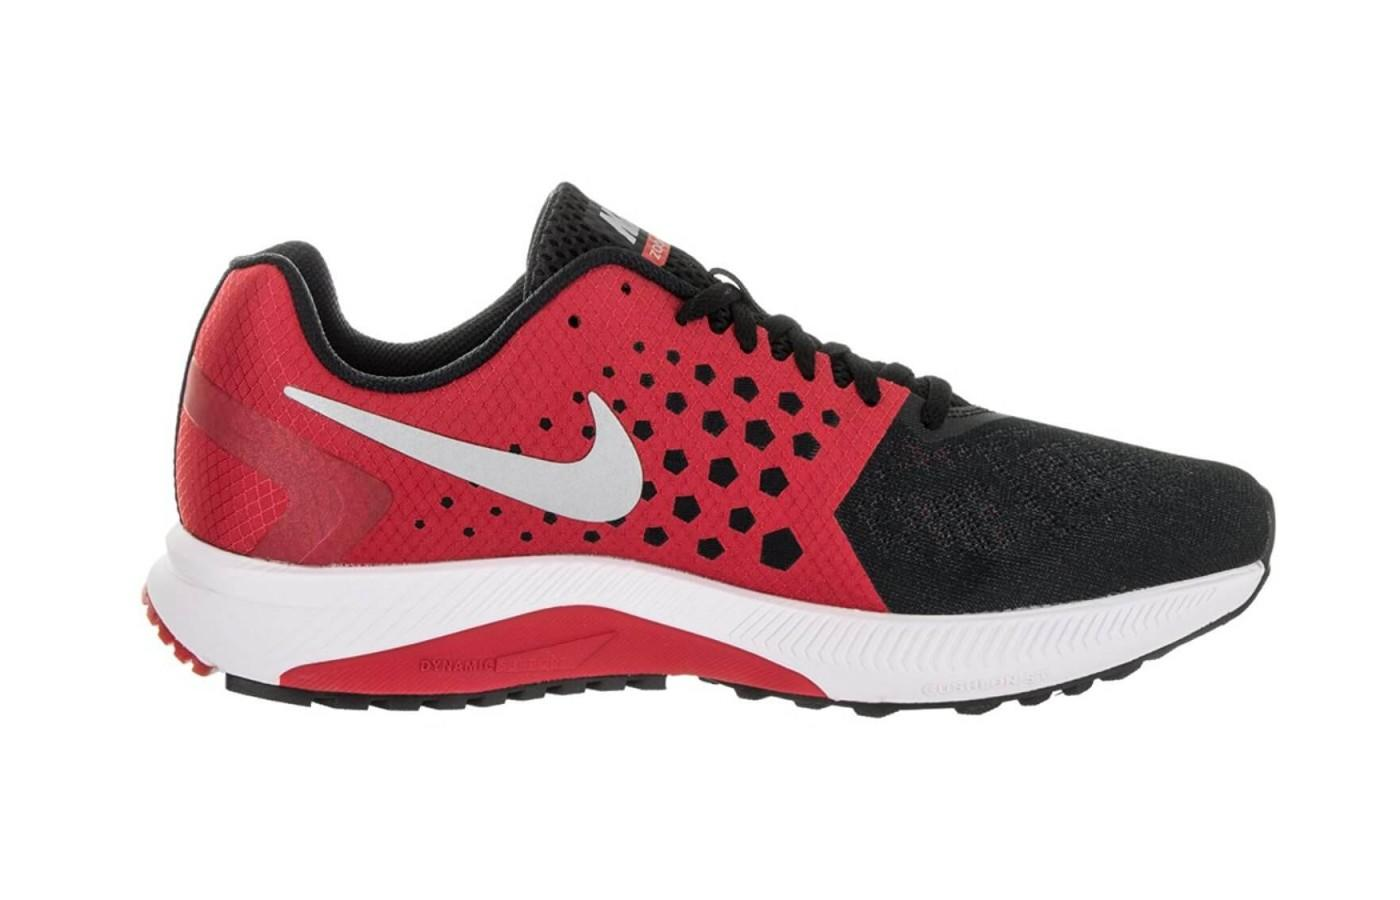 incredible prices for whole family 100% top quality Nike Air Zoom Span